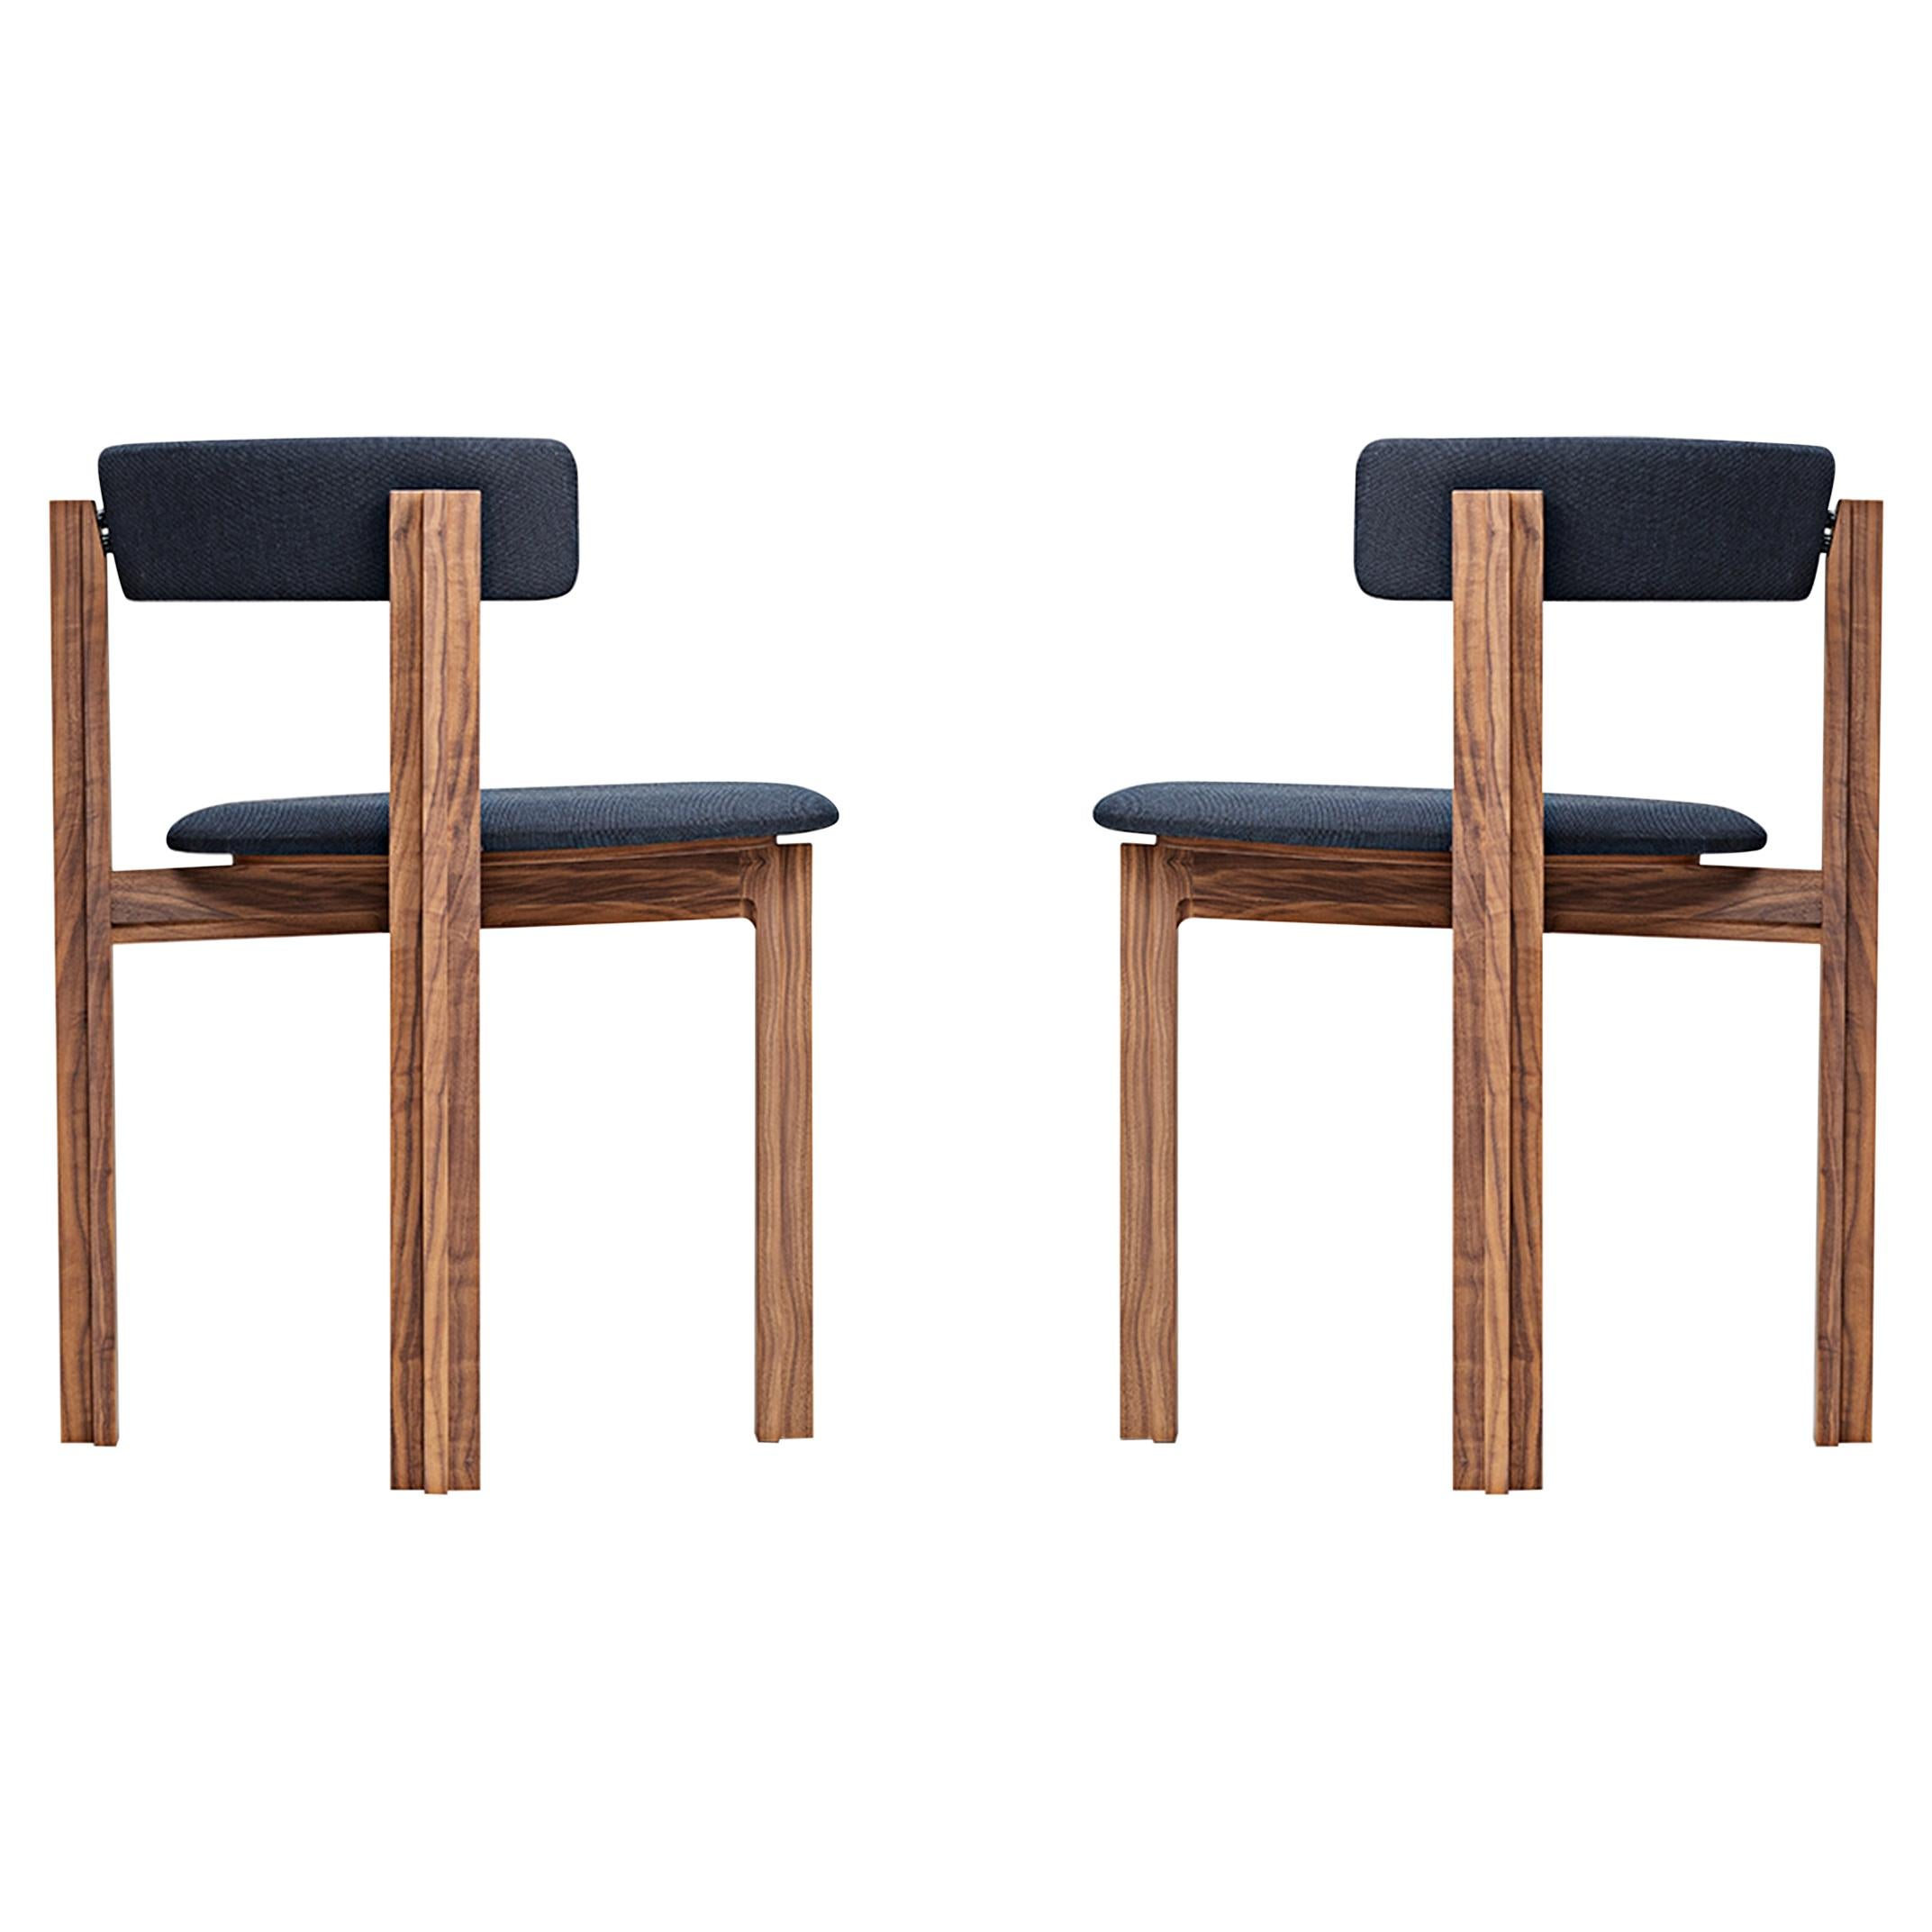 Set of Two Principal Dining Wood Chairs Designed by Bodil Kjær